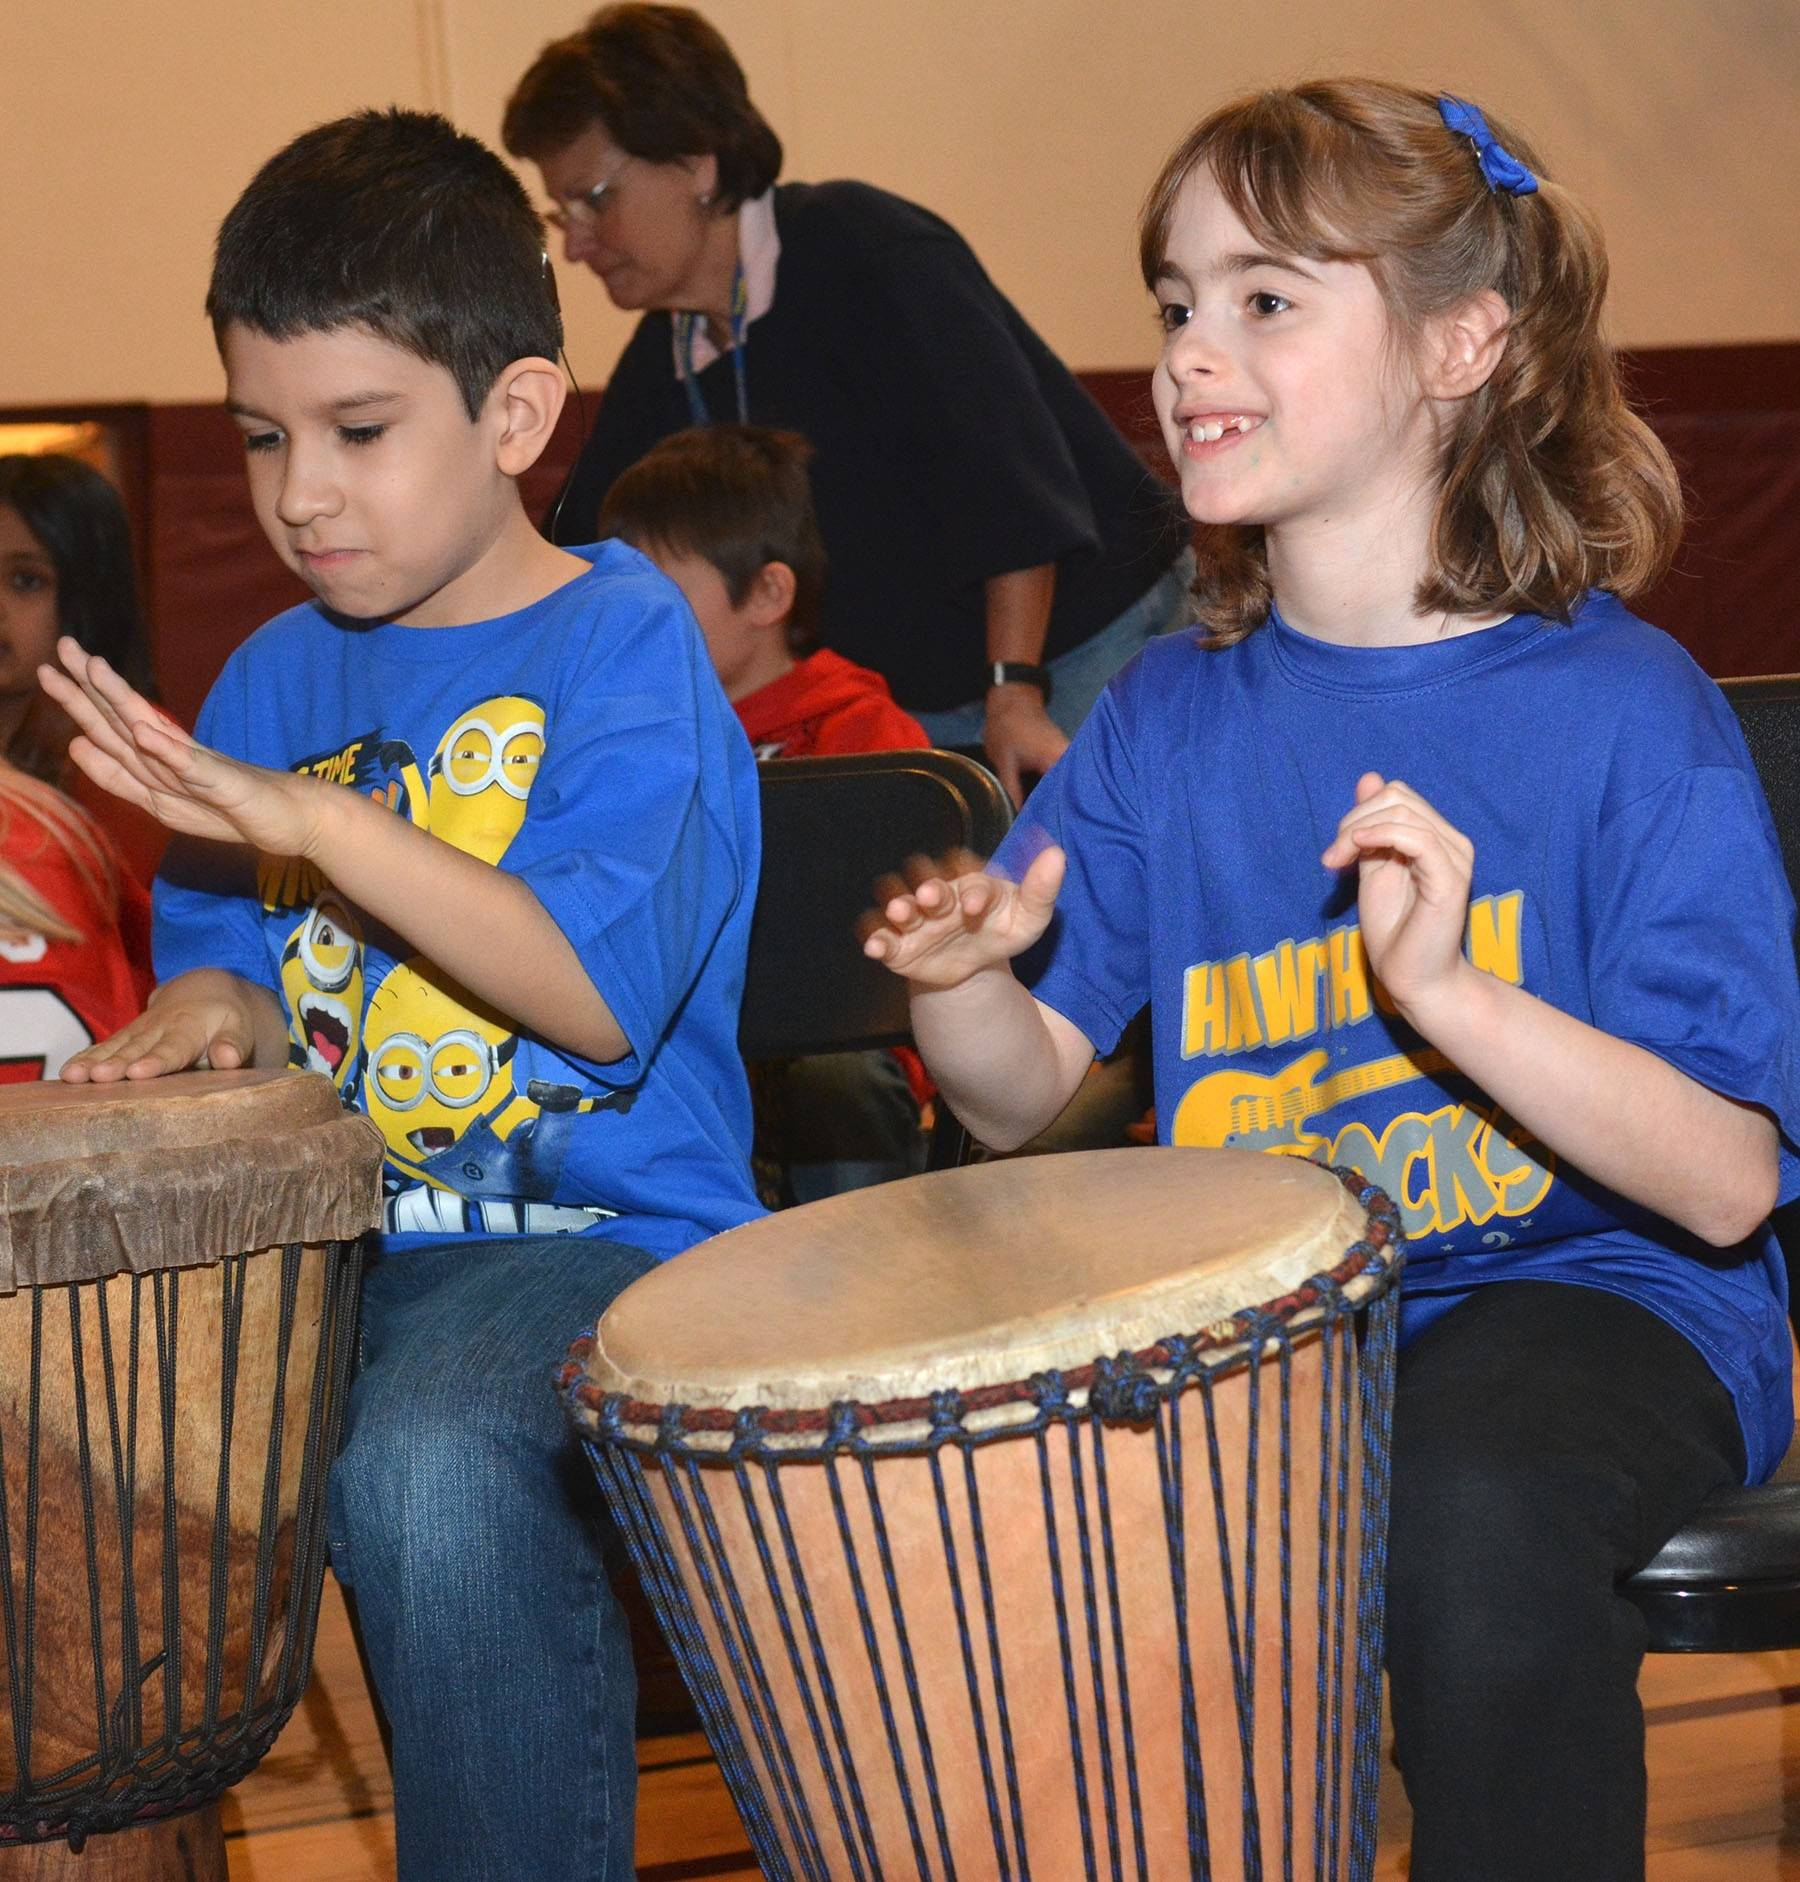 Townline Elementary School students Tony Segrero and Abigail Weiner play dununs, West African drums, as part of an Artful Learning in Action program. District 73 hopes that connecting the fine arts to learning will help students develop into analytical thinkers and team players, with higher academic achievement and an appreciation for cultural diversity.